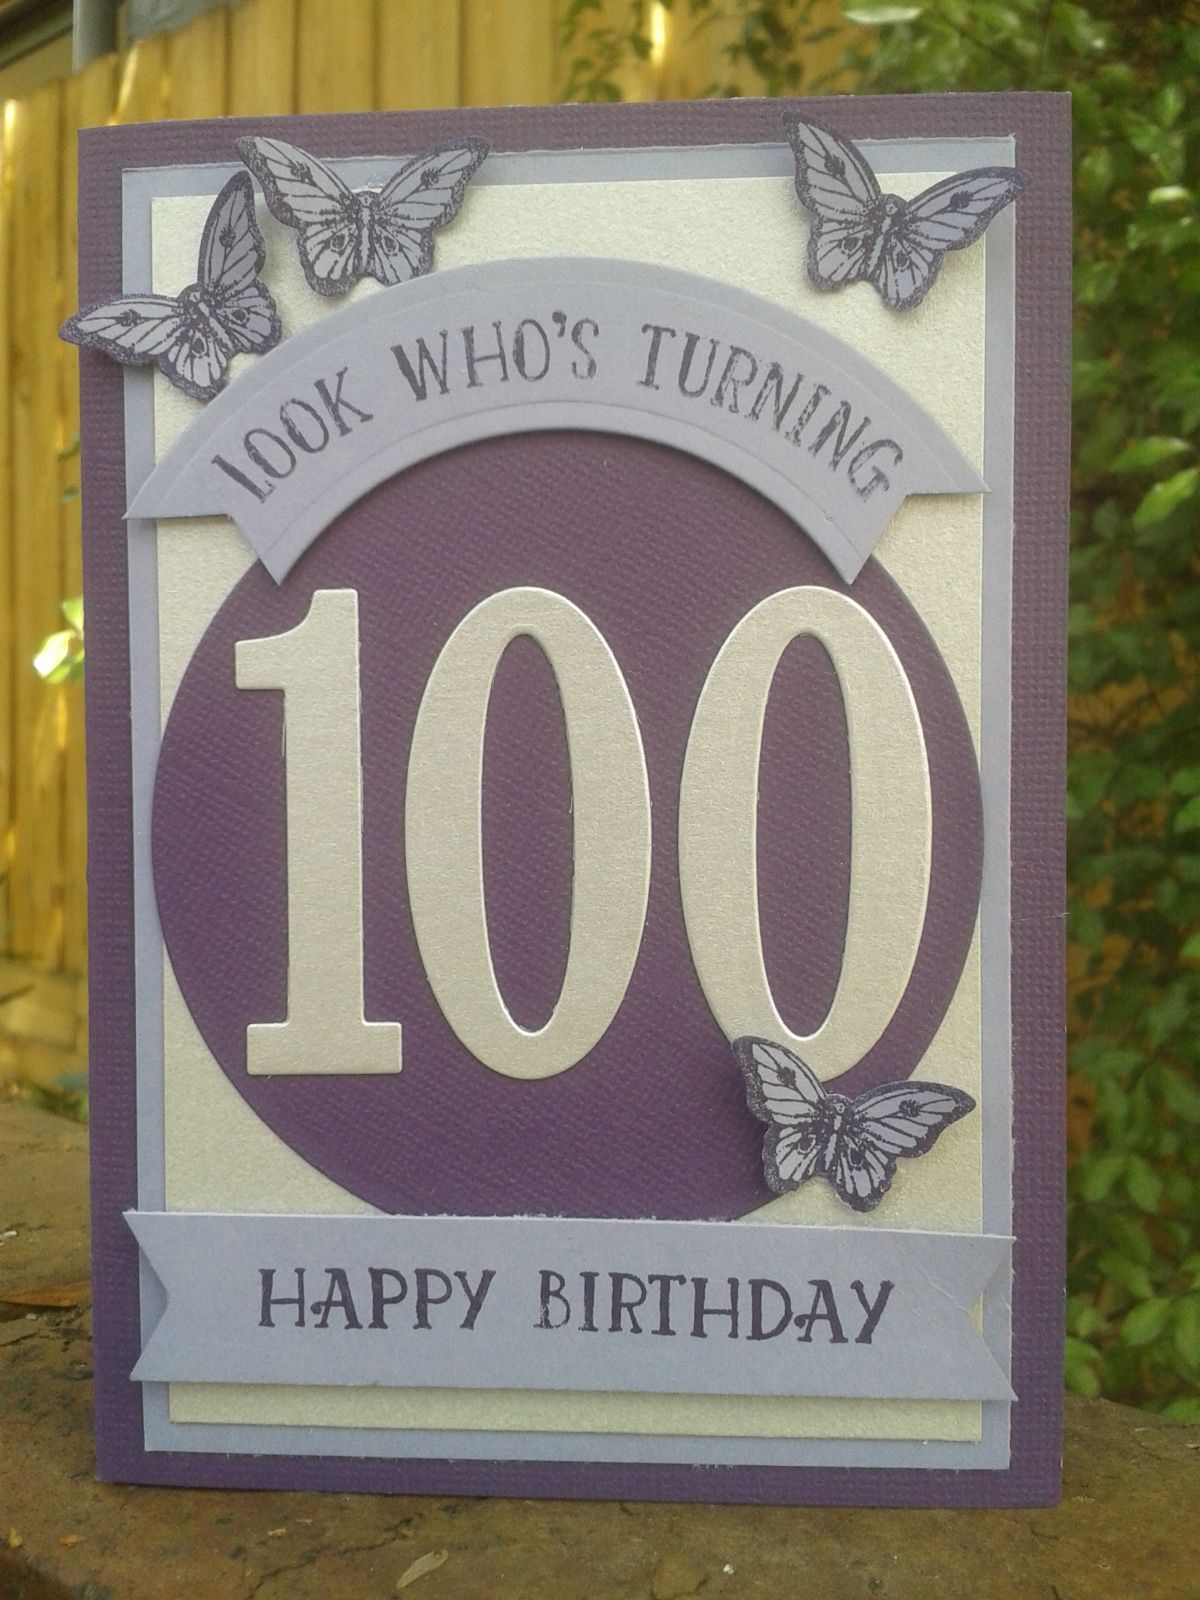 A Happy 100th Birthday Card I Made For A Very Special Lady Turning 100 Yrs Old I Used Stampin U 100th Birthday Card Old Birthday Cards Homemade Birthday Cards